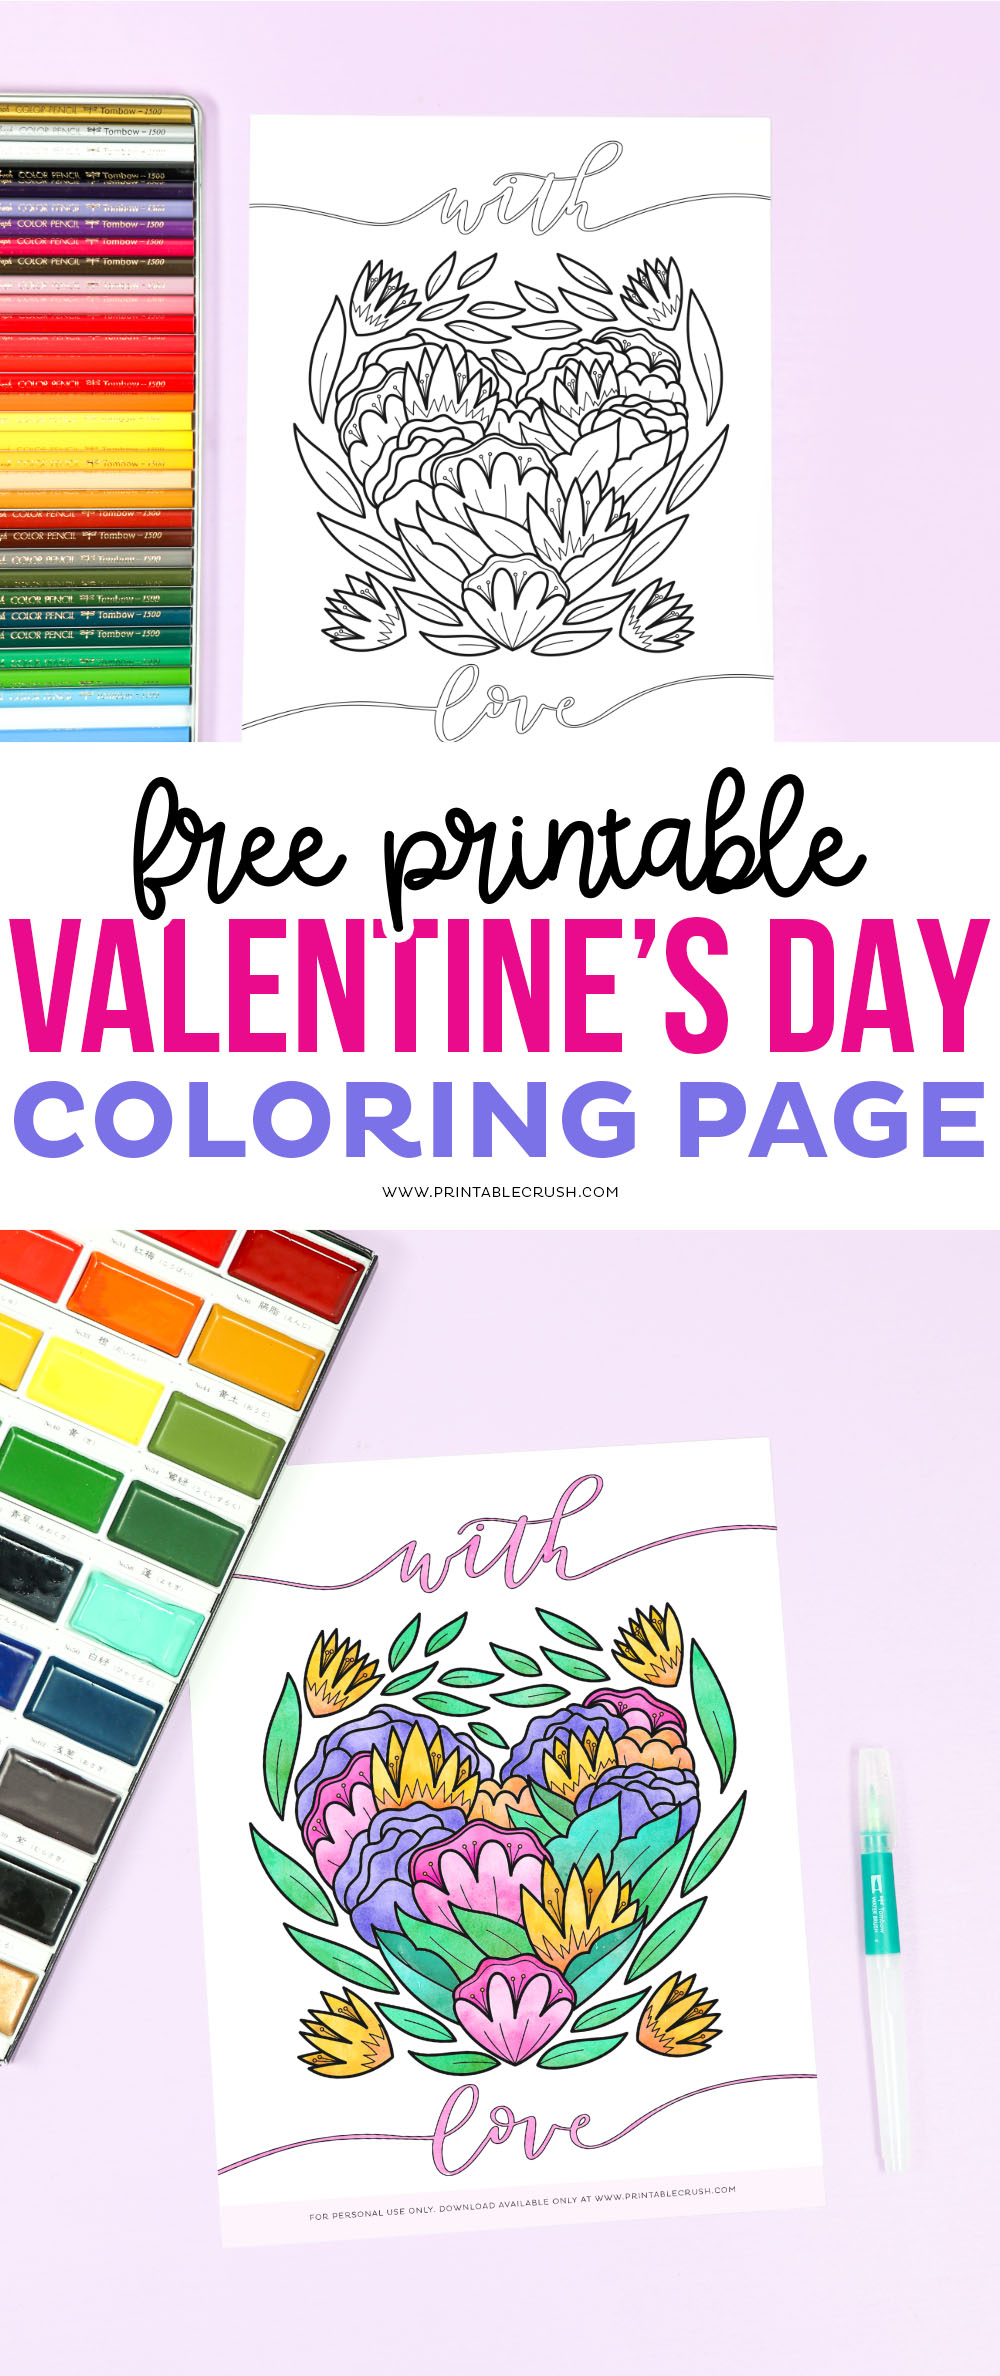 Valentine's Day Coloring Page - Free Valentine Coloring Sheet - Valentine's Day Coloring Sheet - Printable Crush